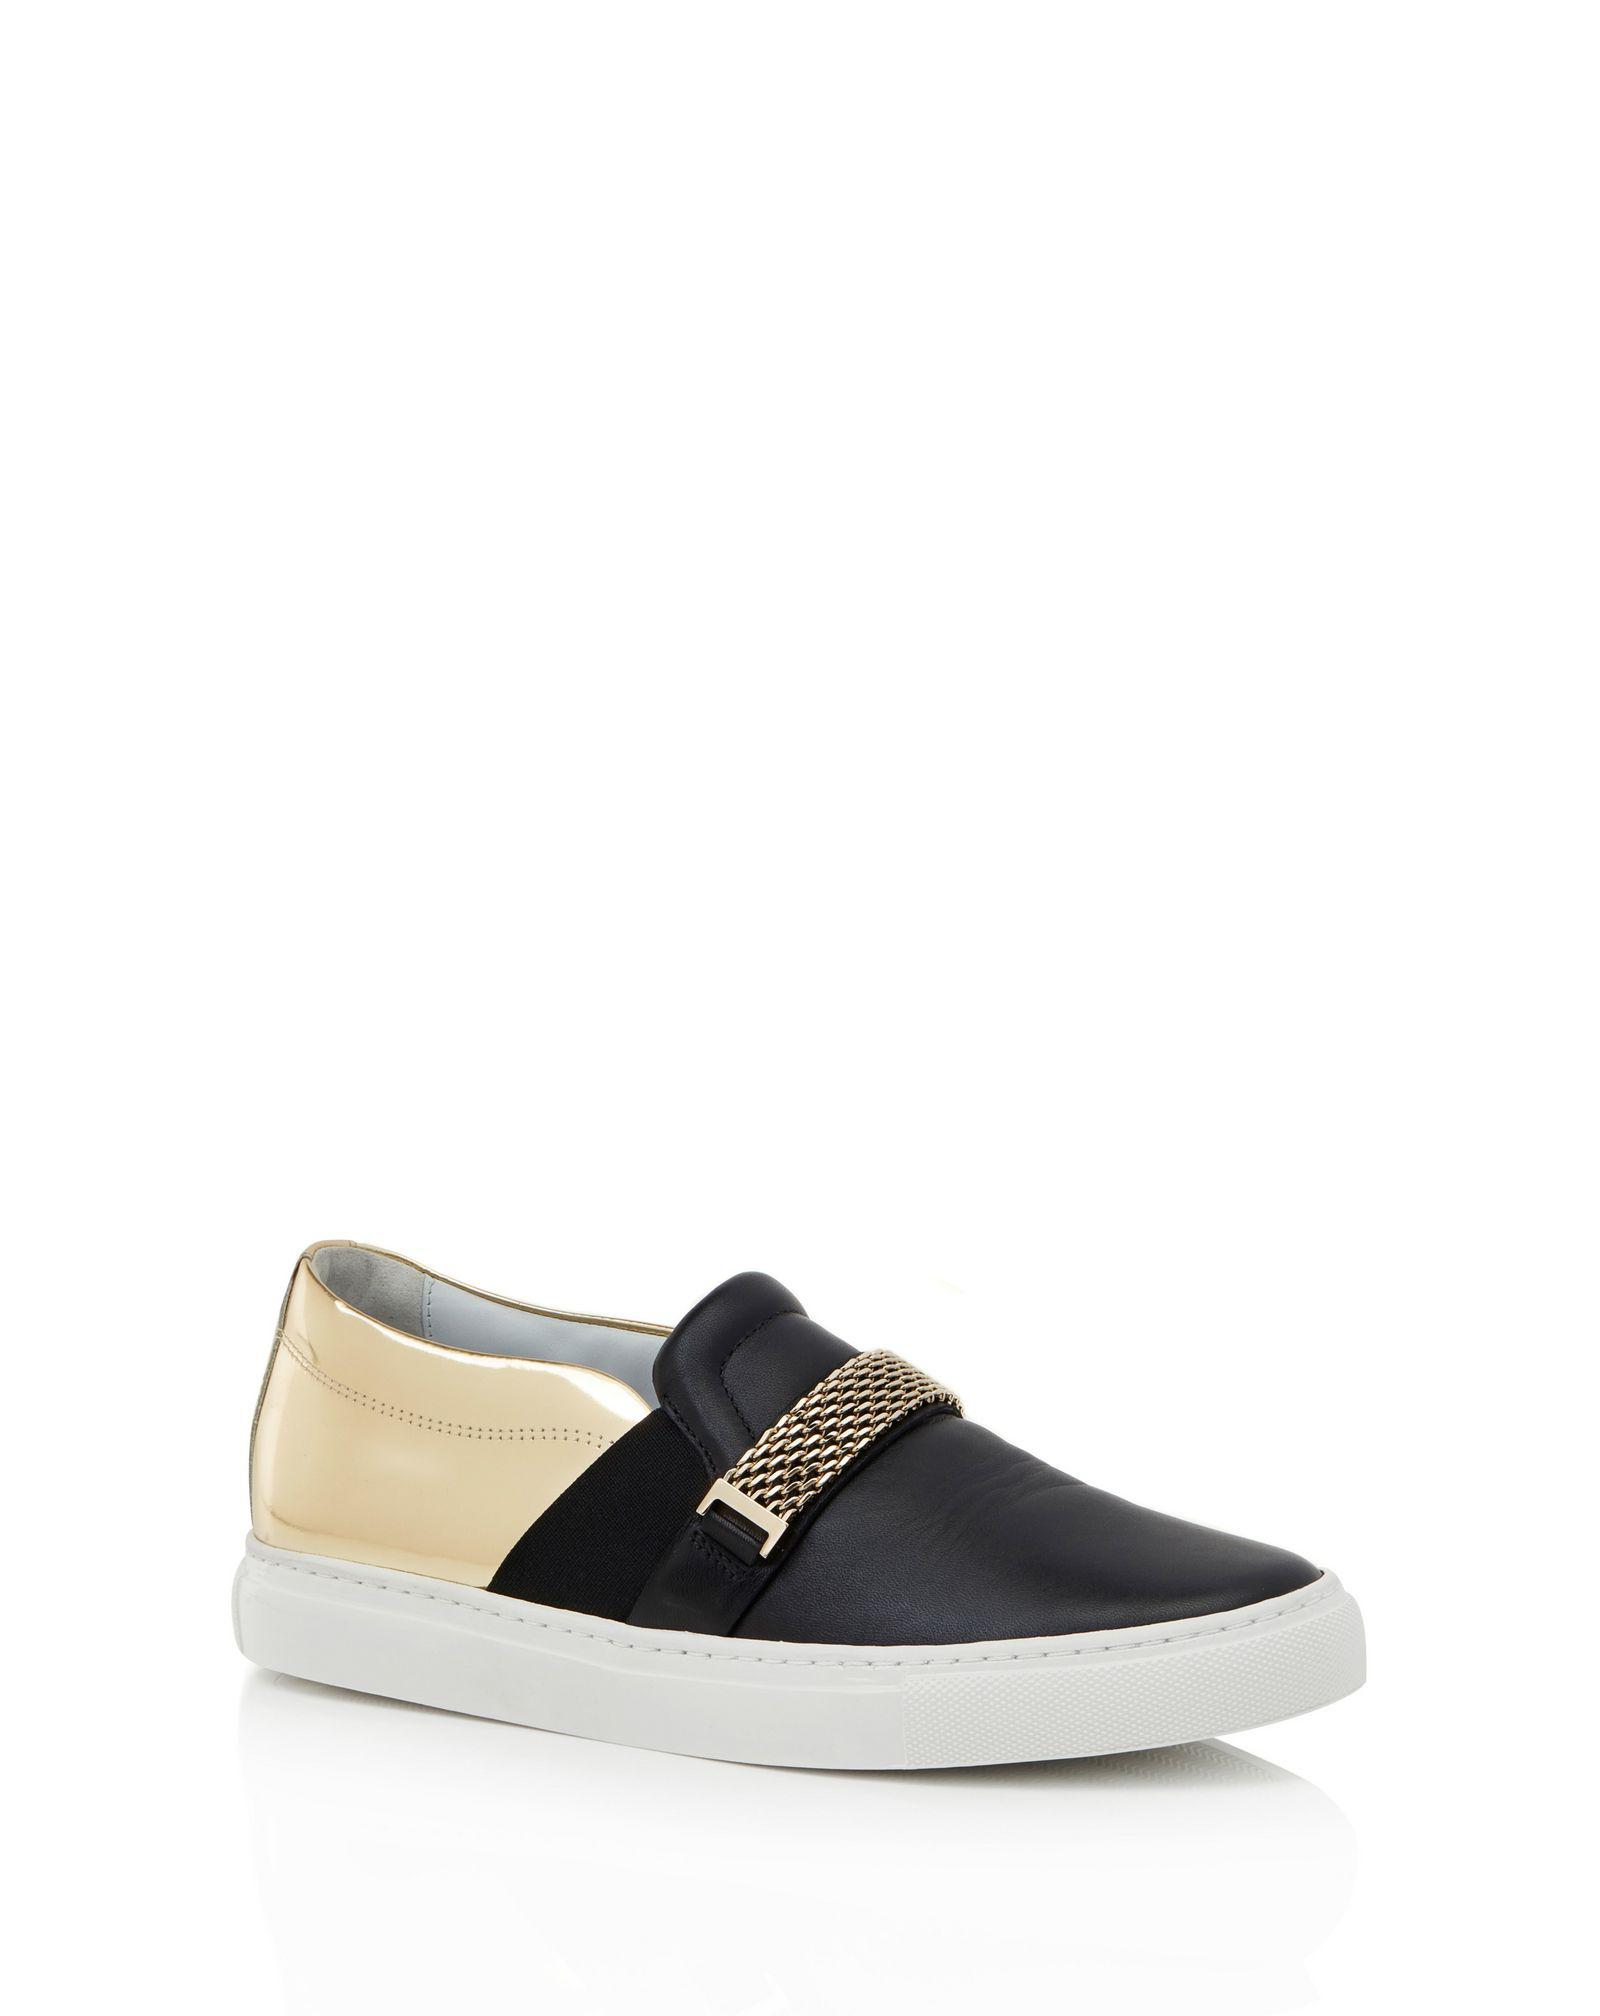 9e970de7f43e Lyst - Lanvin Slip-on Sneaker With Chain in Black